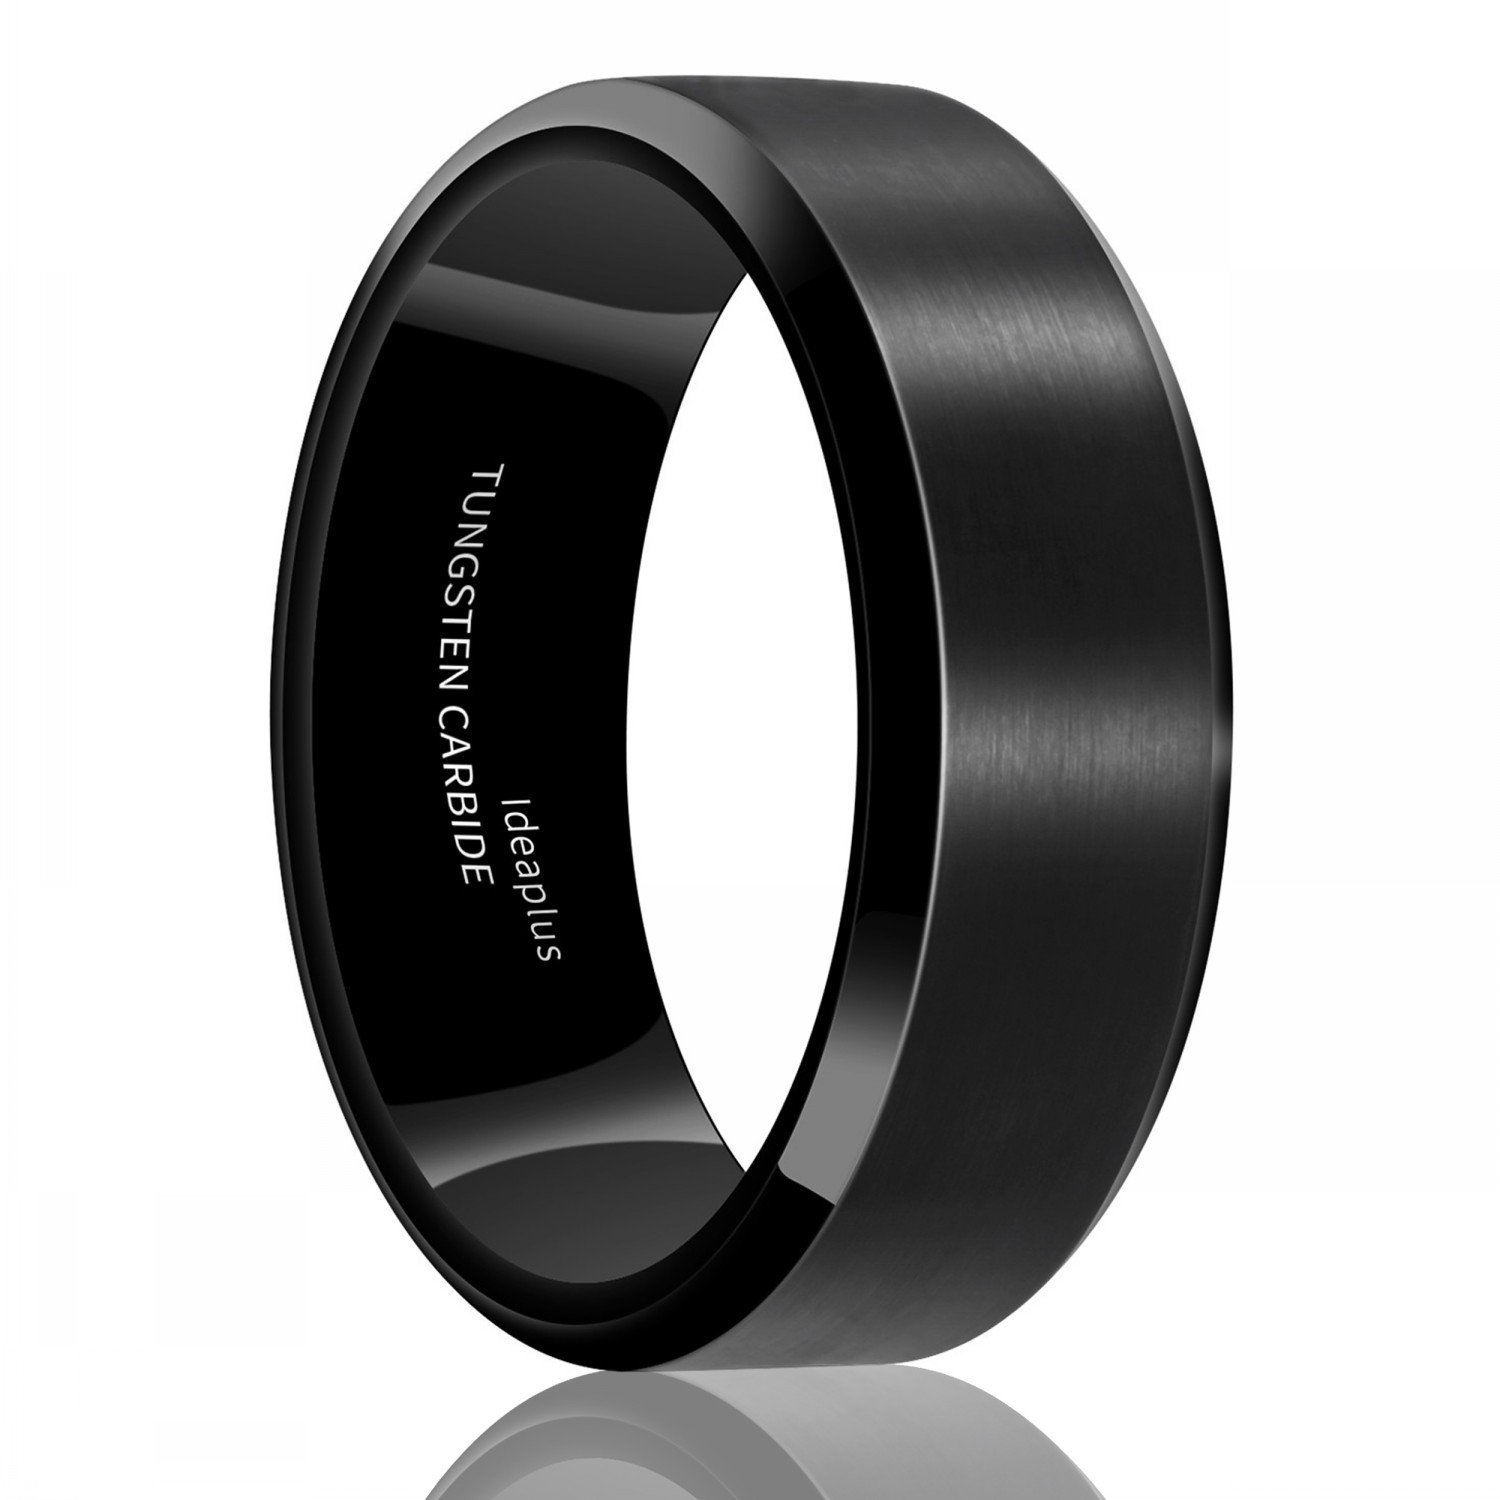 IDEAPLUS Tungsten Wedding Band Ring 8mm for Men Women Comfort Fit Black Beveled Edge Polished Brushed and Titanium Steel Necklaces